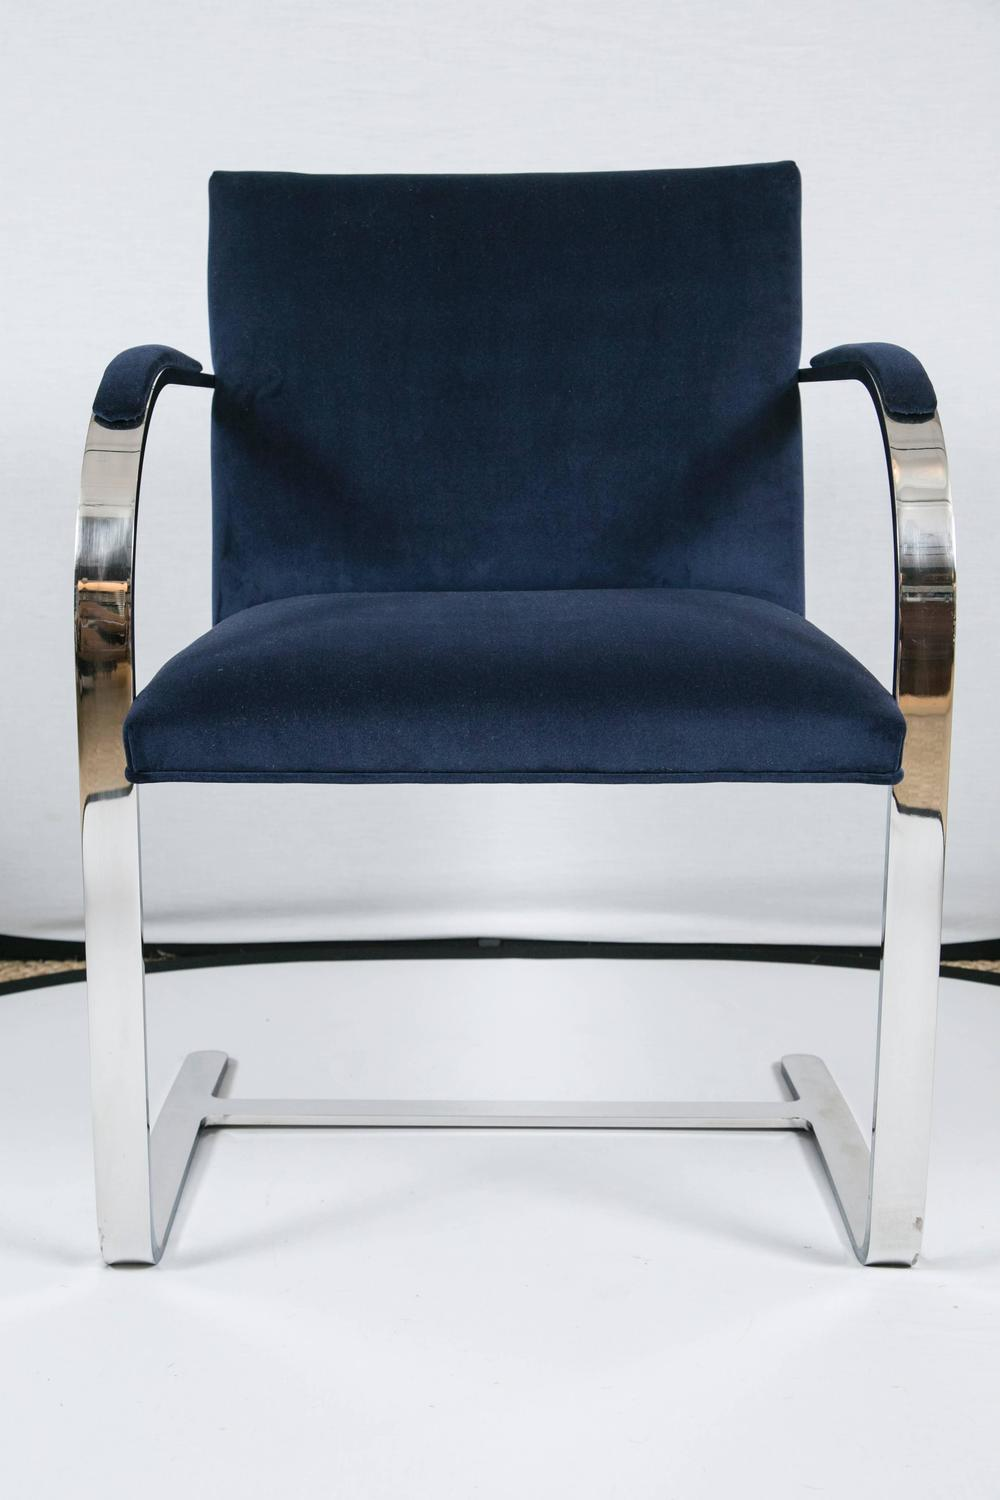 Brno Flat Bar Chairs In Navy Velvet Set Of Six For Sale At 1stdibs